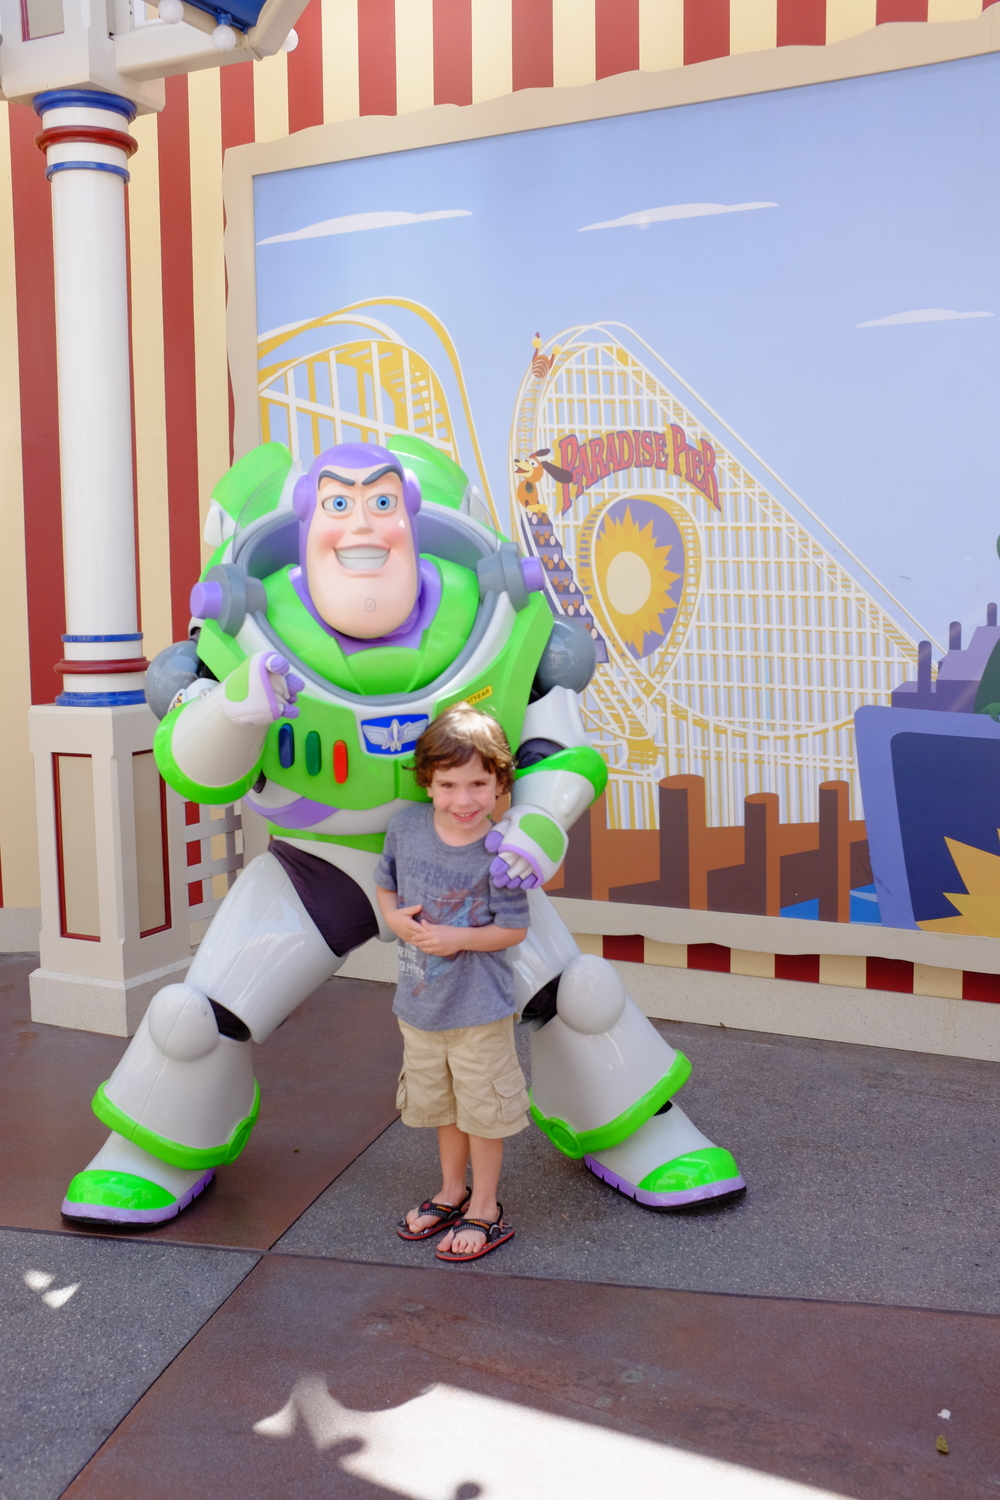 Saw Buzz Lightyear and Jack was excited to get a picture with him